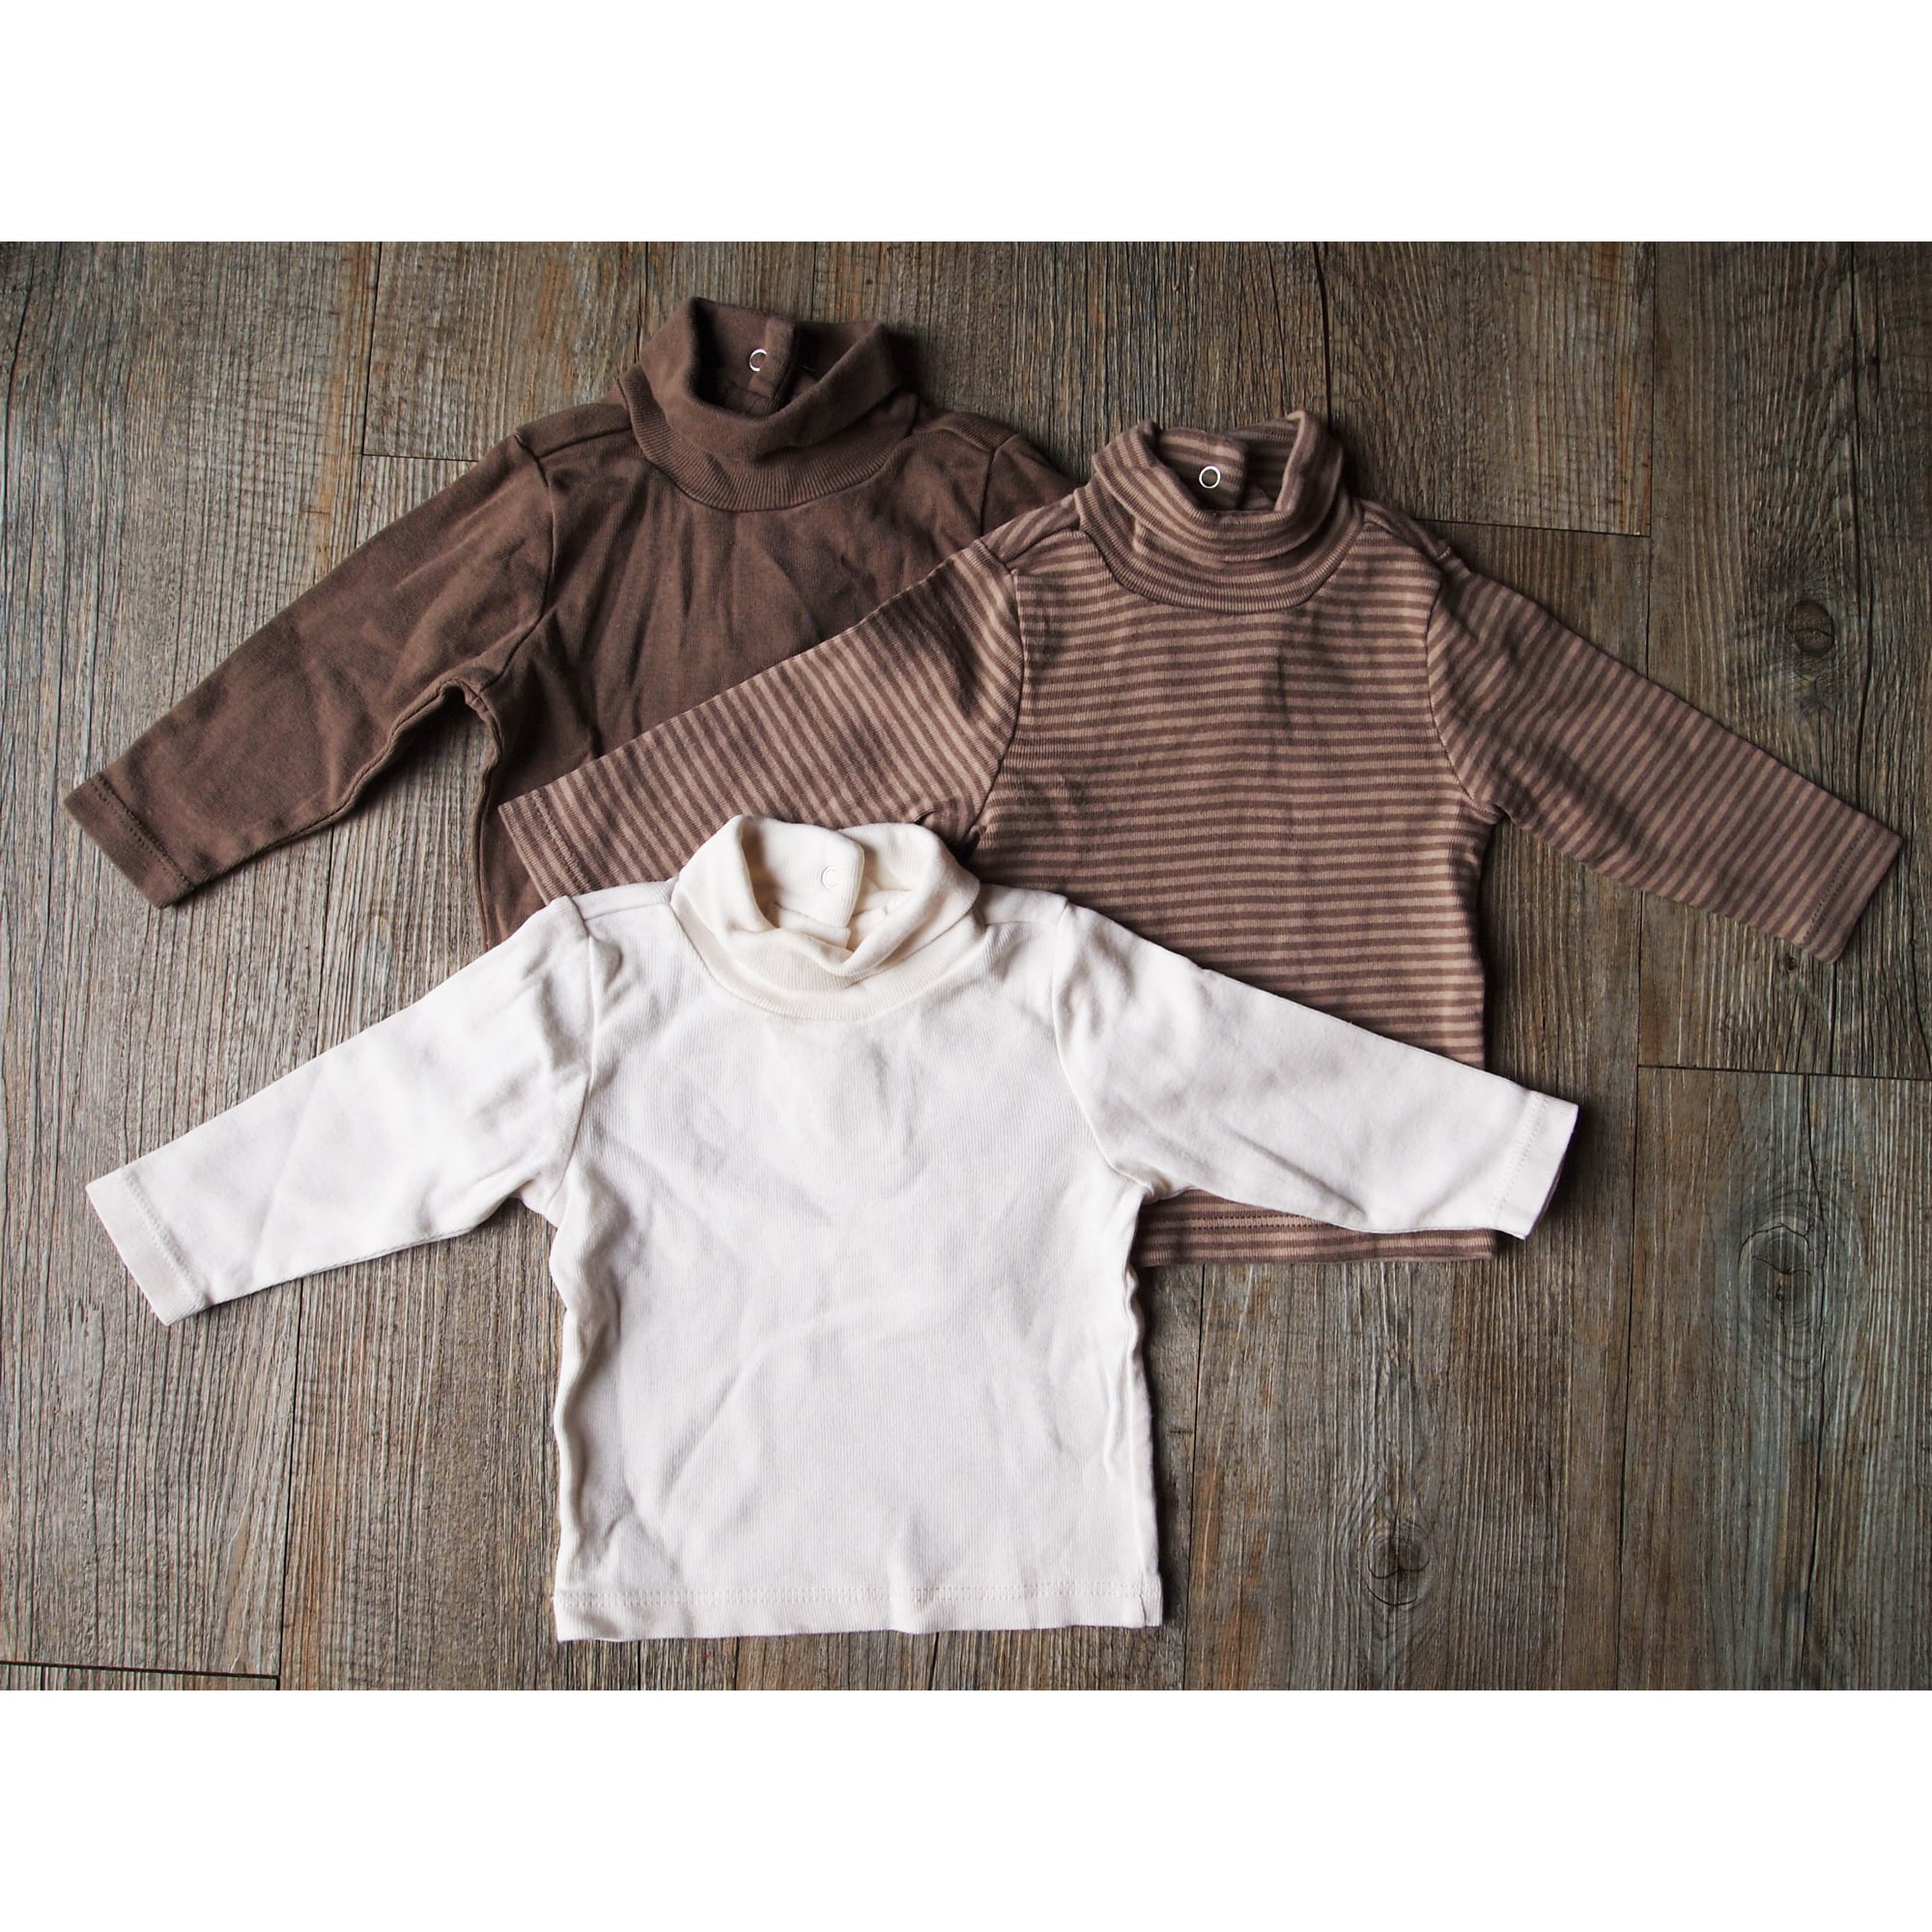 Top, tee shirt VERTBAUDET Marron